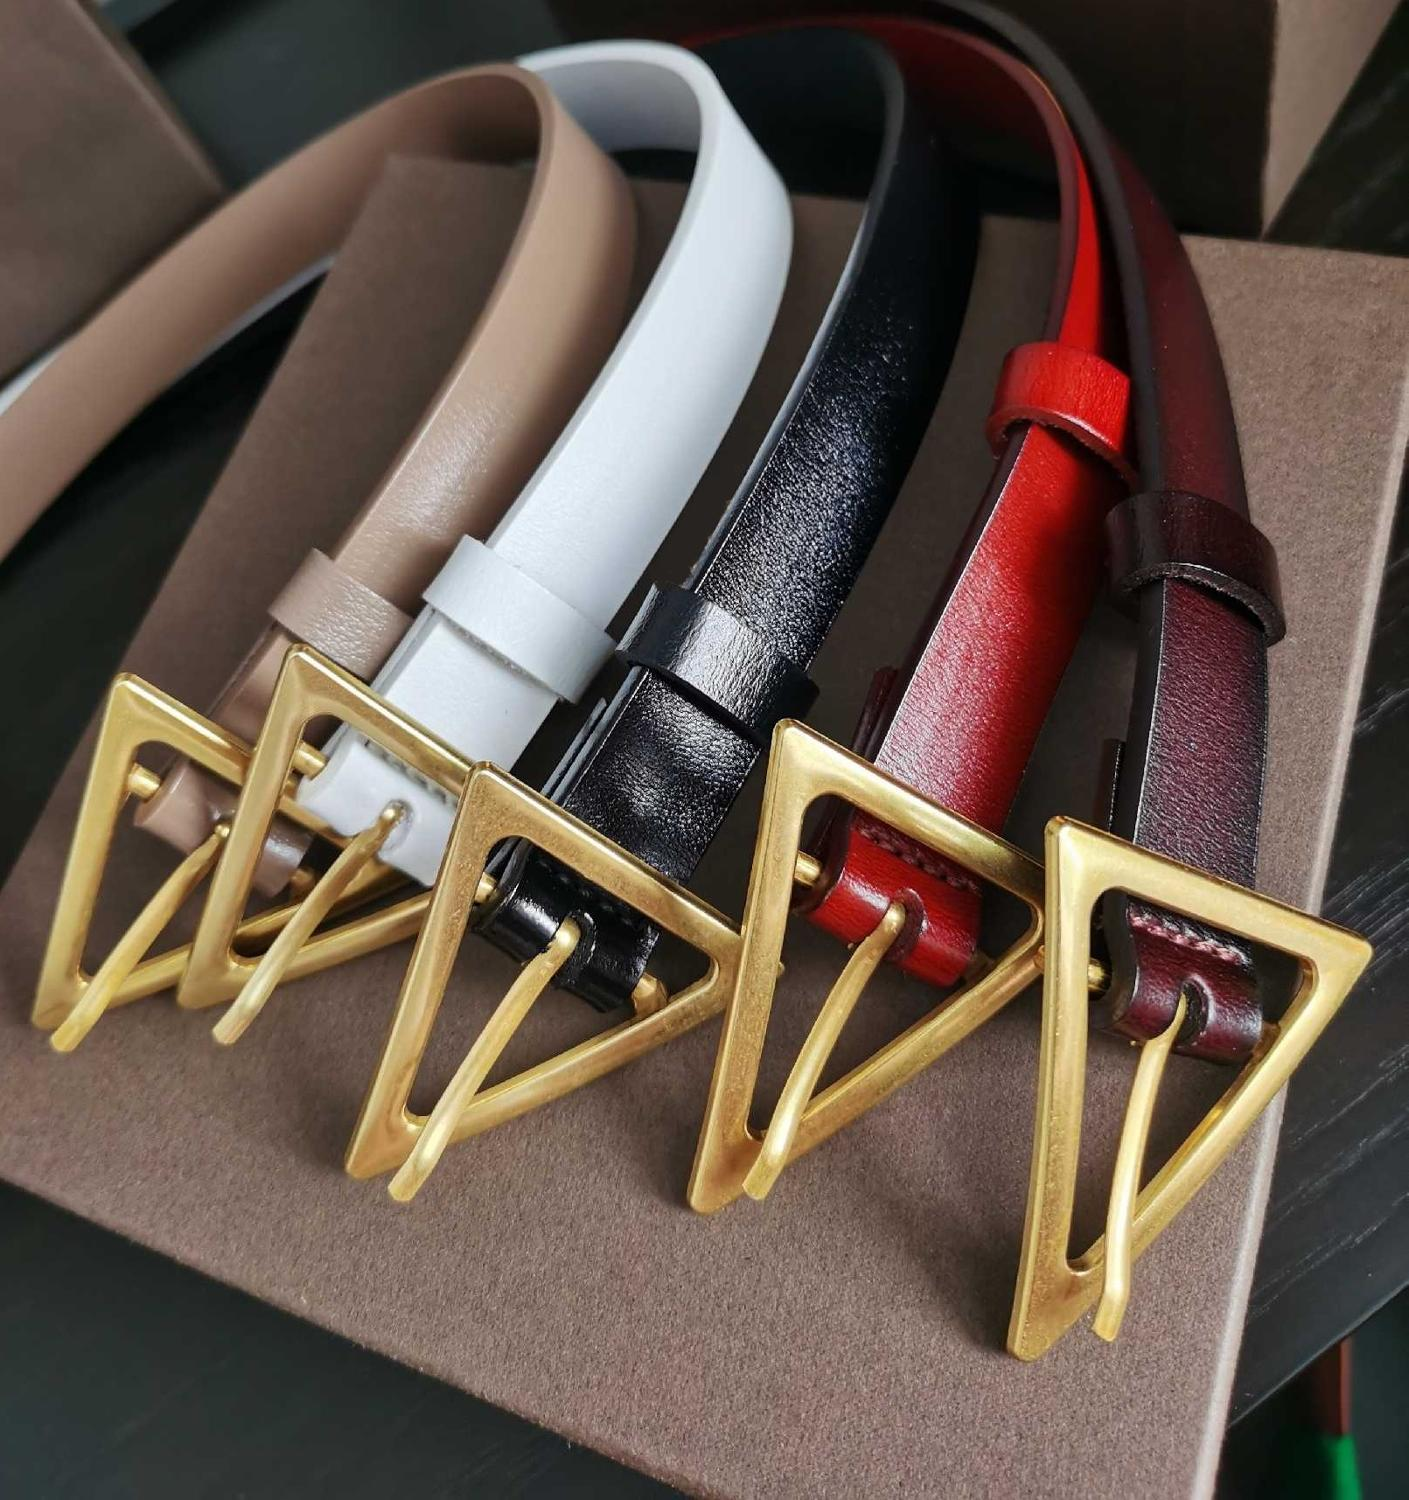 Female leather belt 2020 luxury designer ladies black triangle copper gold buckle ins style belts cinturon mujer brown red 110